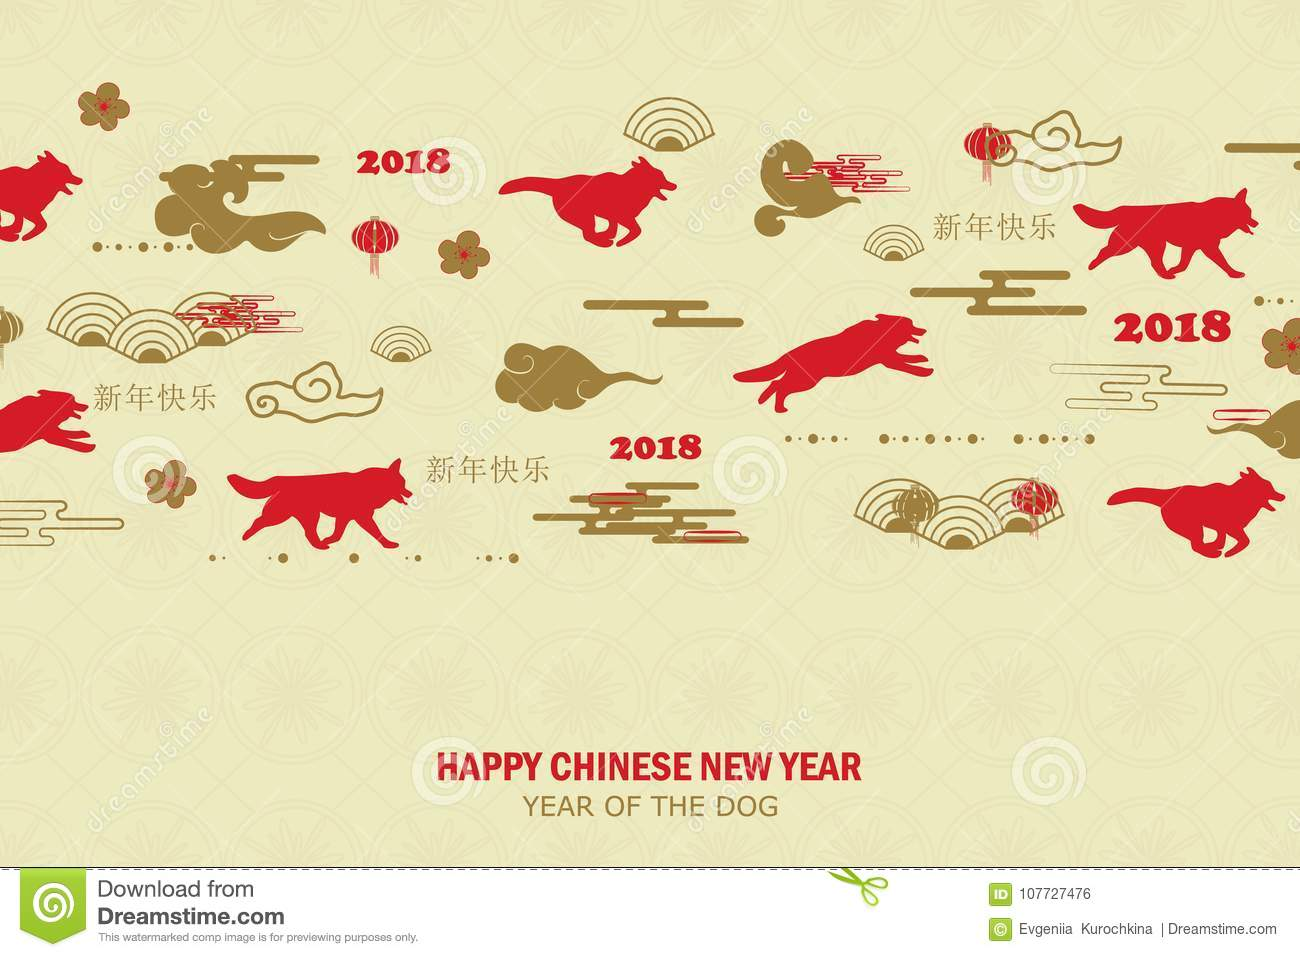 Happy chinese new year lunar chinese new year design with cute royalty free stock photo biocorpaavc